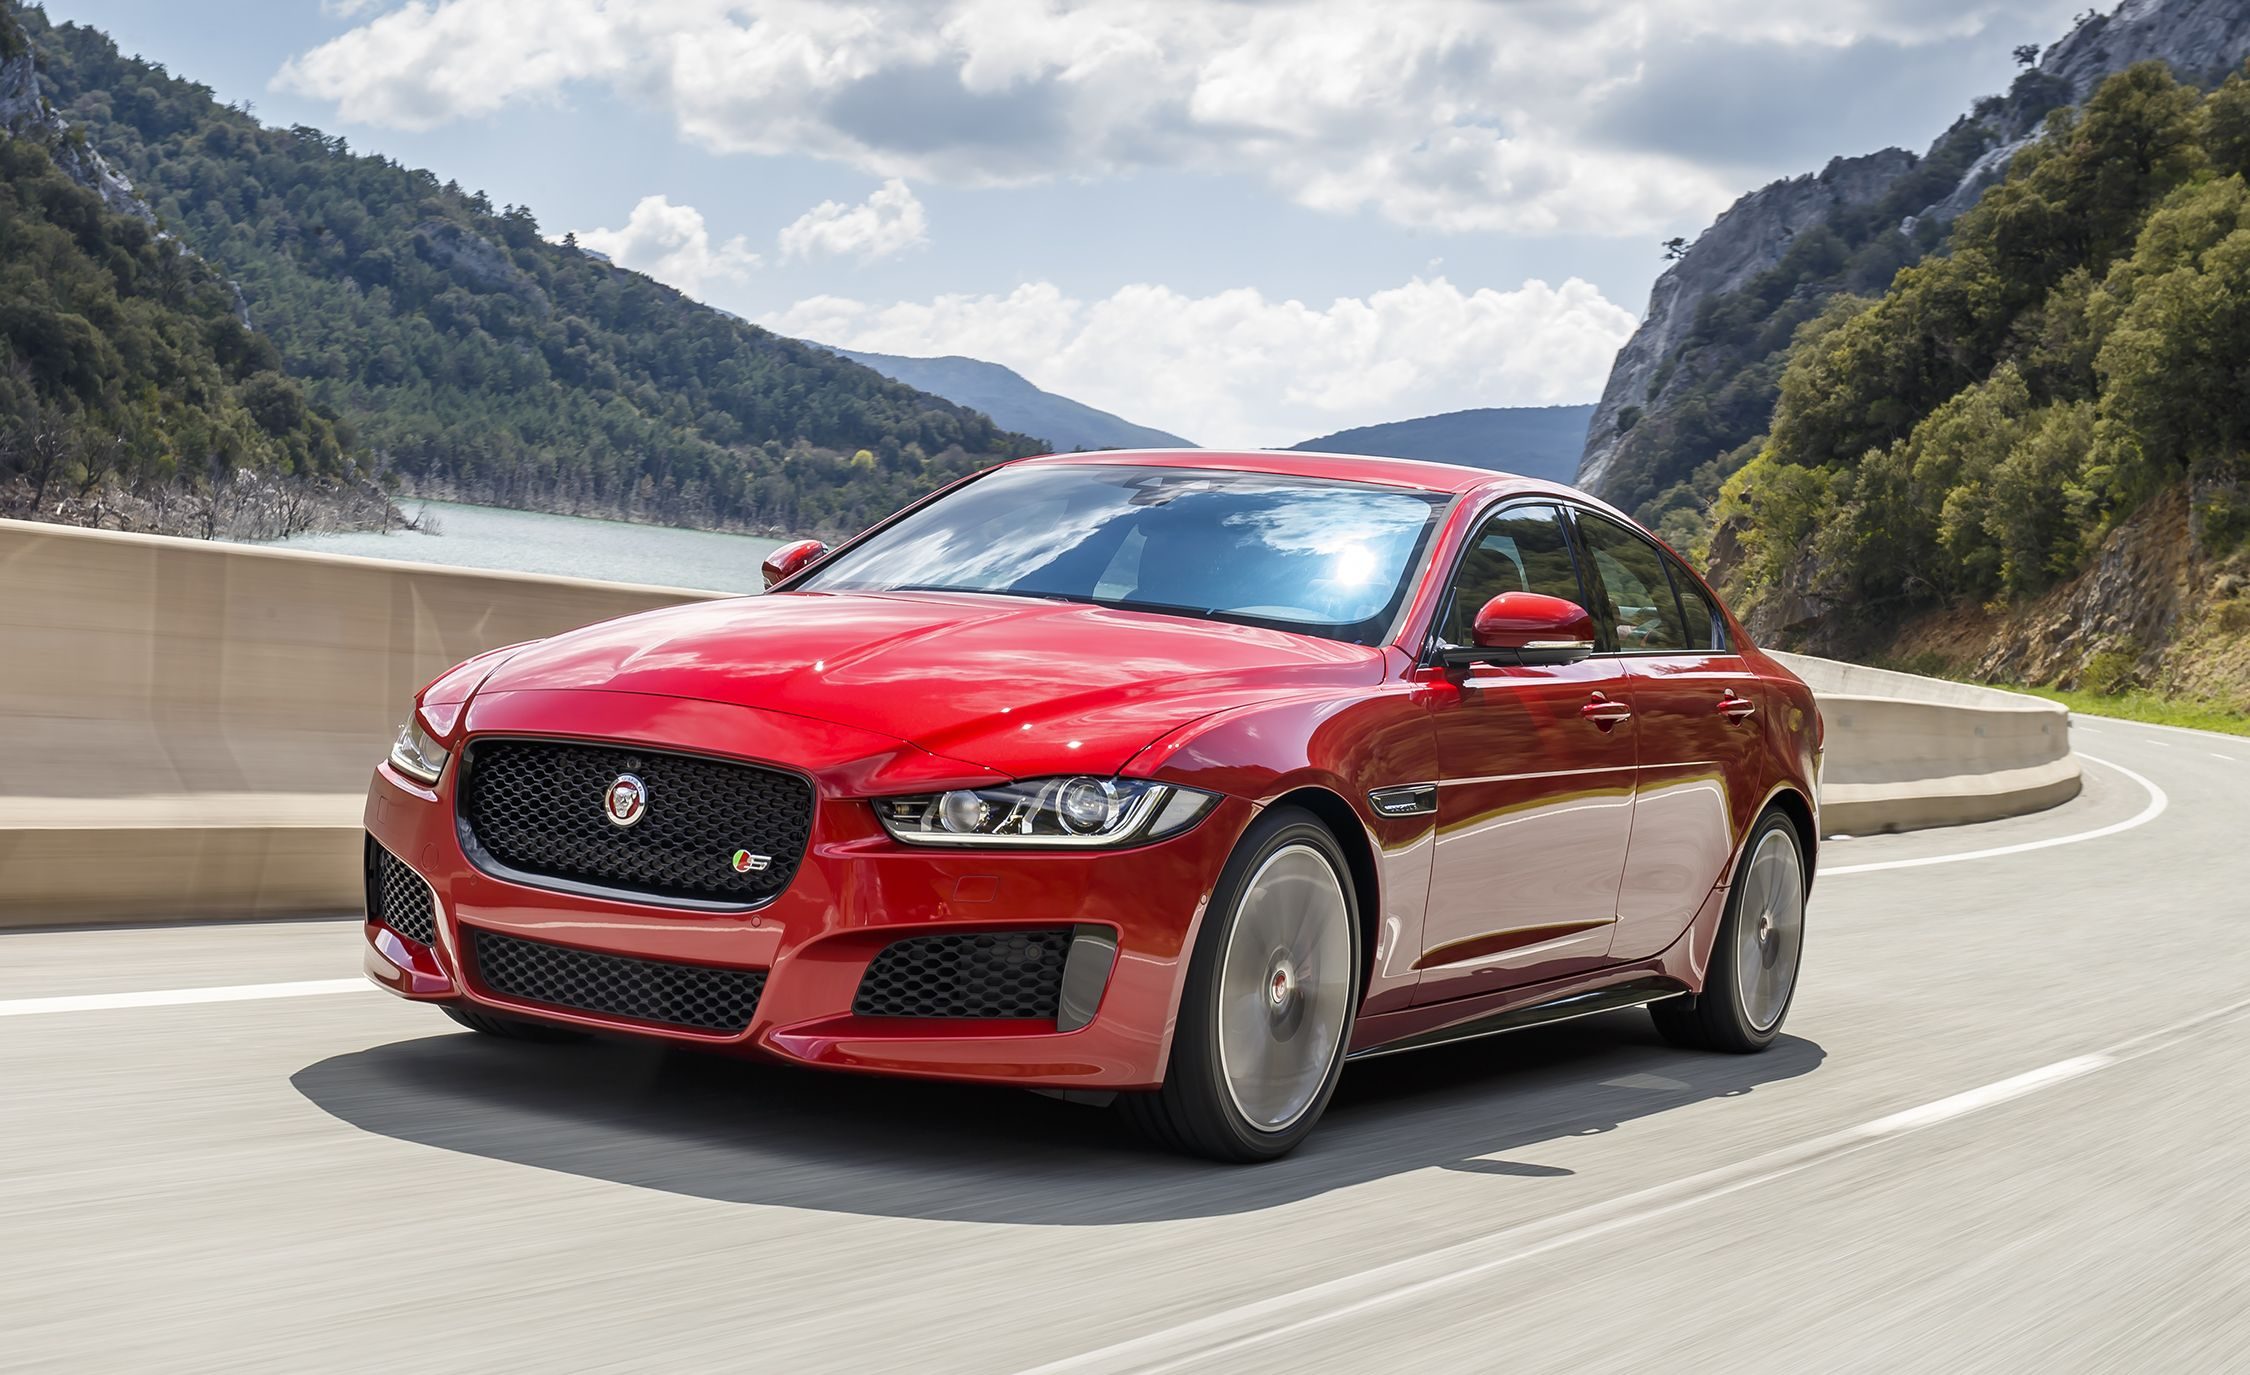 2018 Jaguar Xe Updated With New Engine Options 8211 News 8211